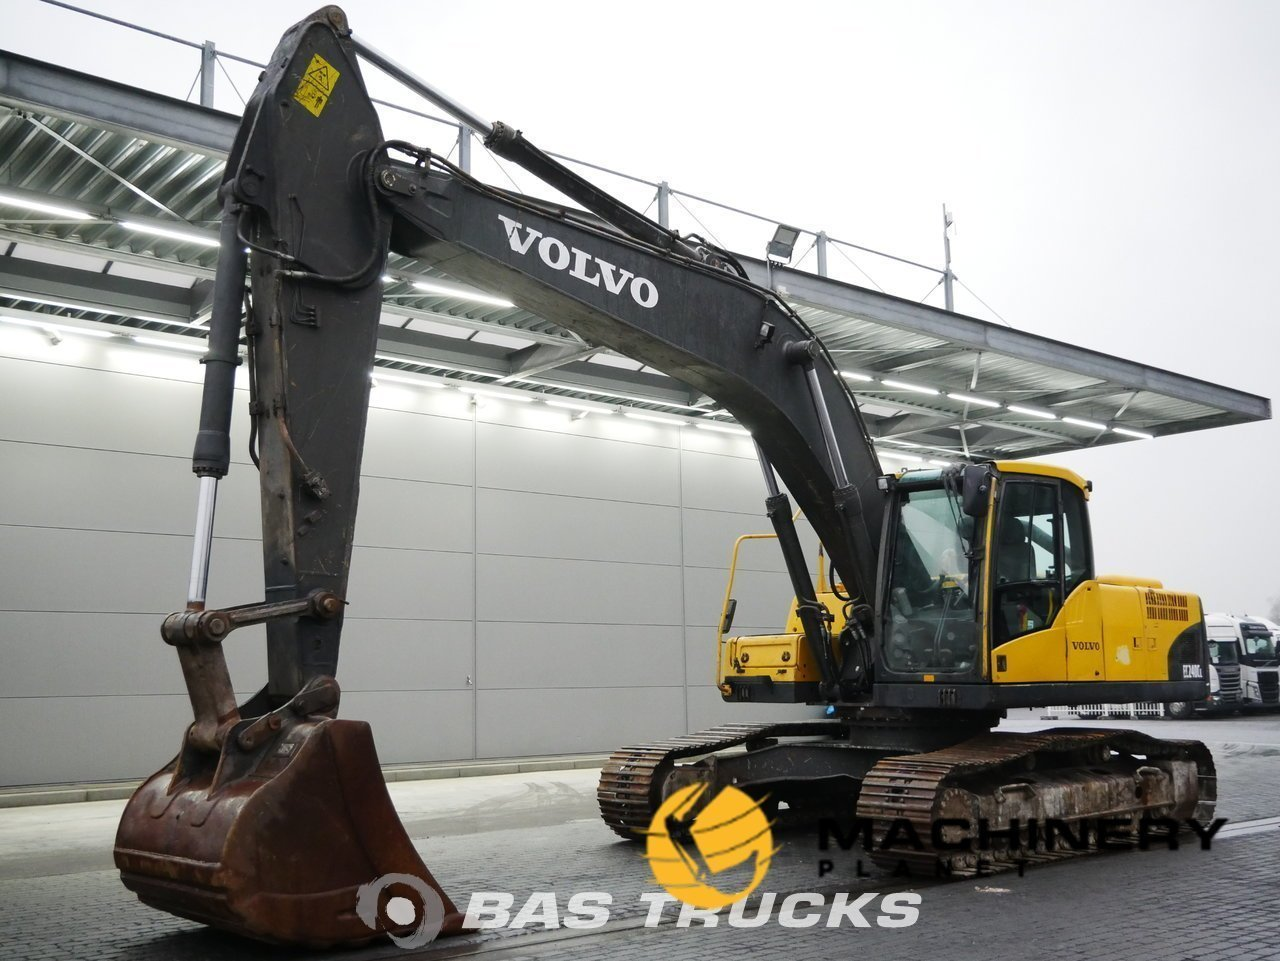 Used-Construction-equipment-Volvo-EC240C-L-Track-2012_145472_1-1554100551627_5ca1b14798f6a-1.jpg